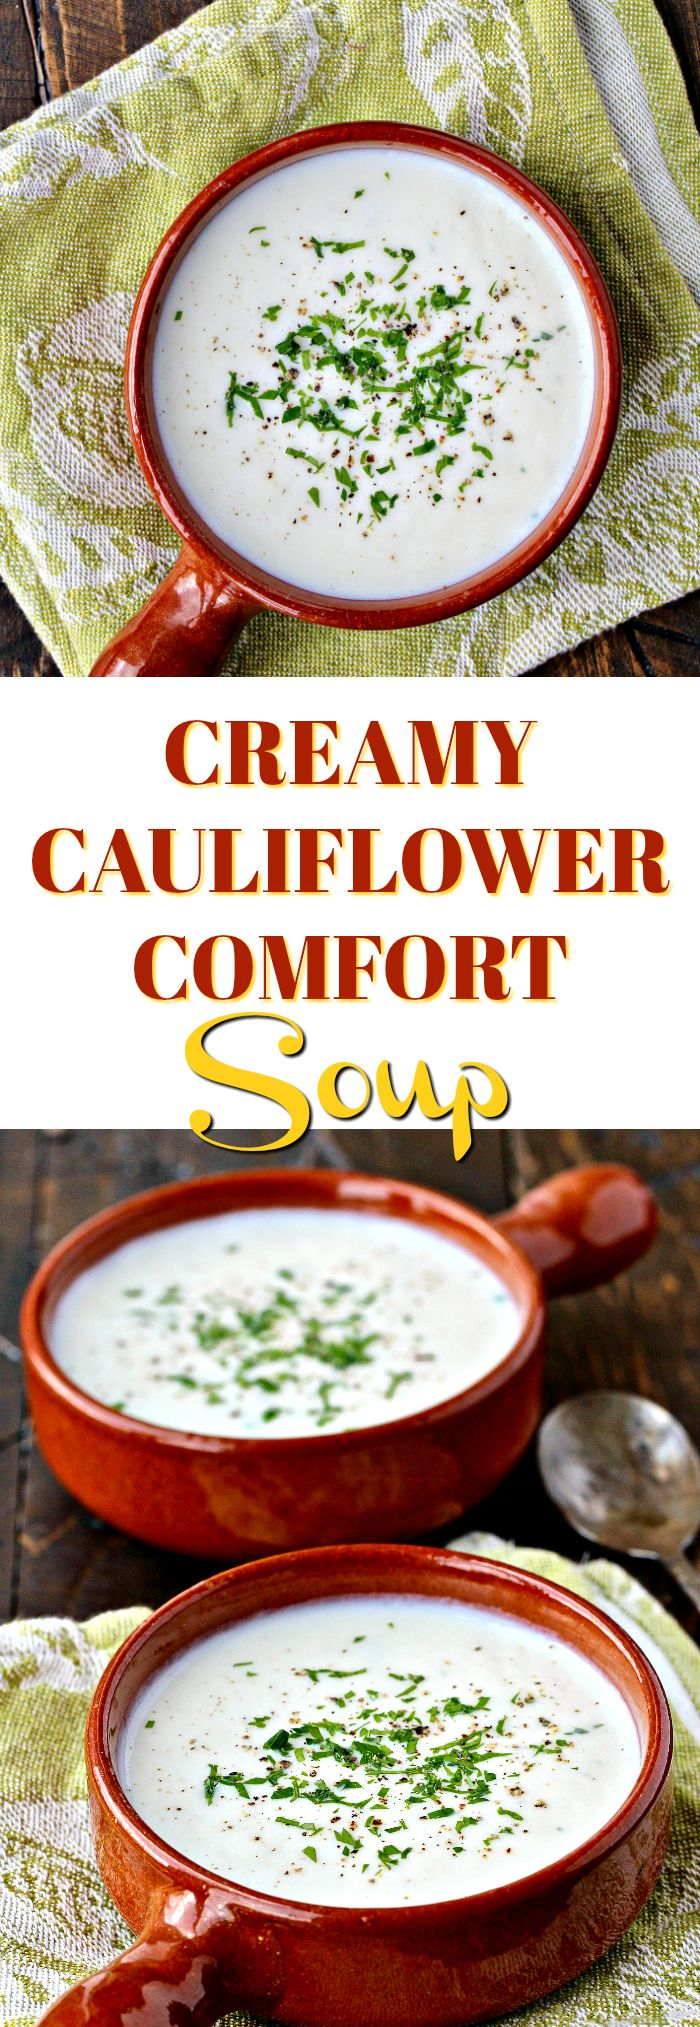 Looking for a lighter dish after the holidays? This vegan Creamy Cauliflower Comfort Soup is light and nutritious plus it's a cinch to make! @thenutribullet #BalanceBlend